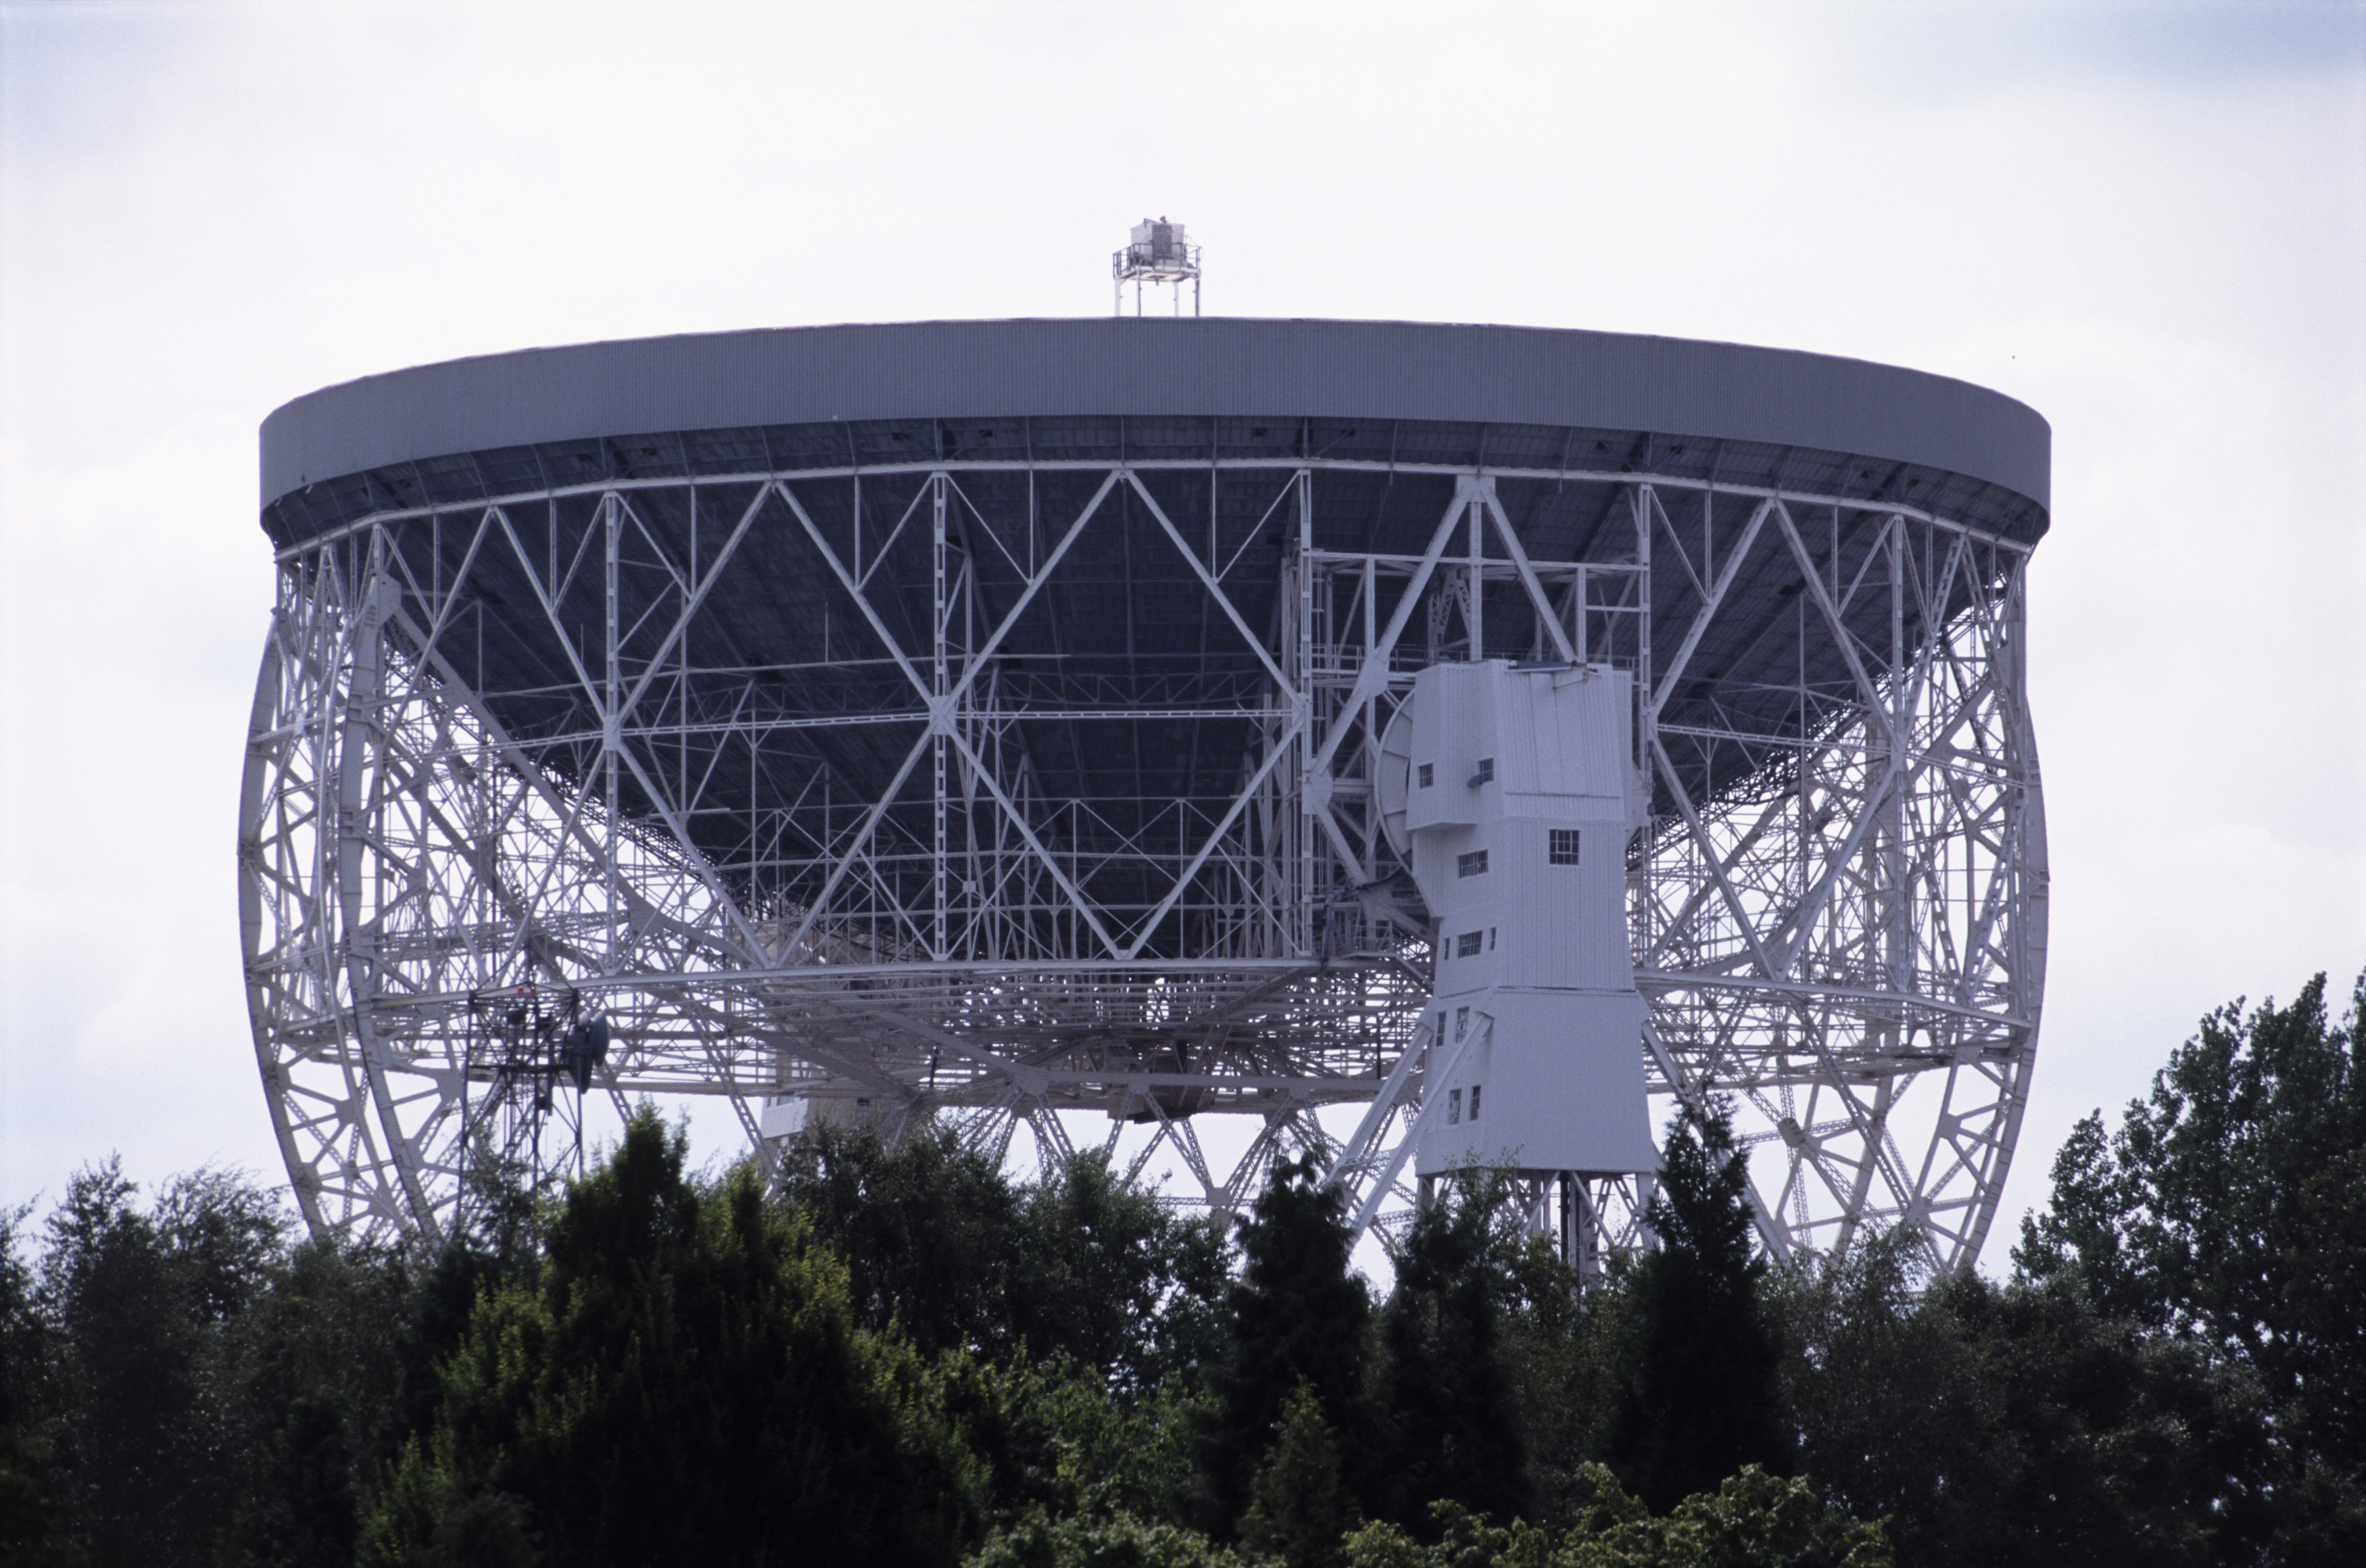 Jodrell Bank, Cheshire England is an astronomical observatory with a large radio telescope that has a steerable parabolic dish